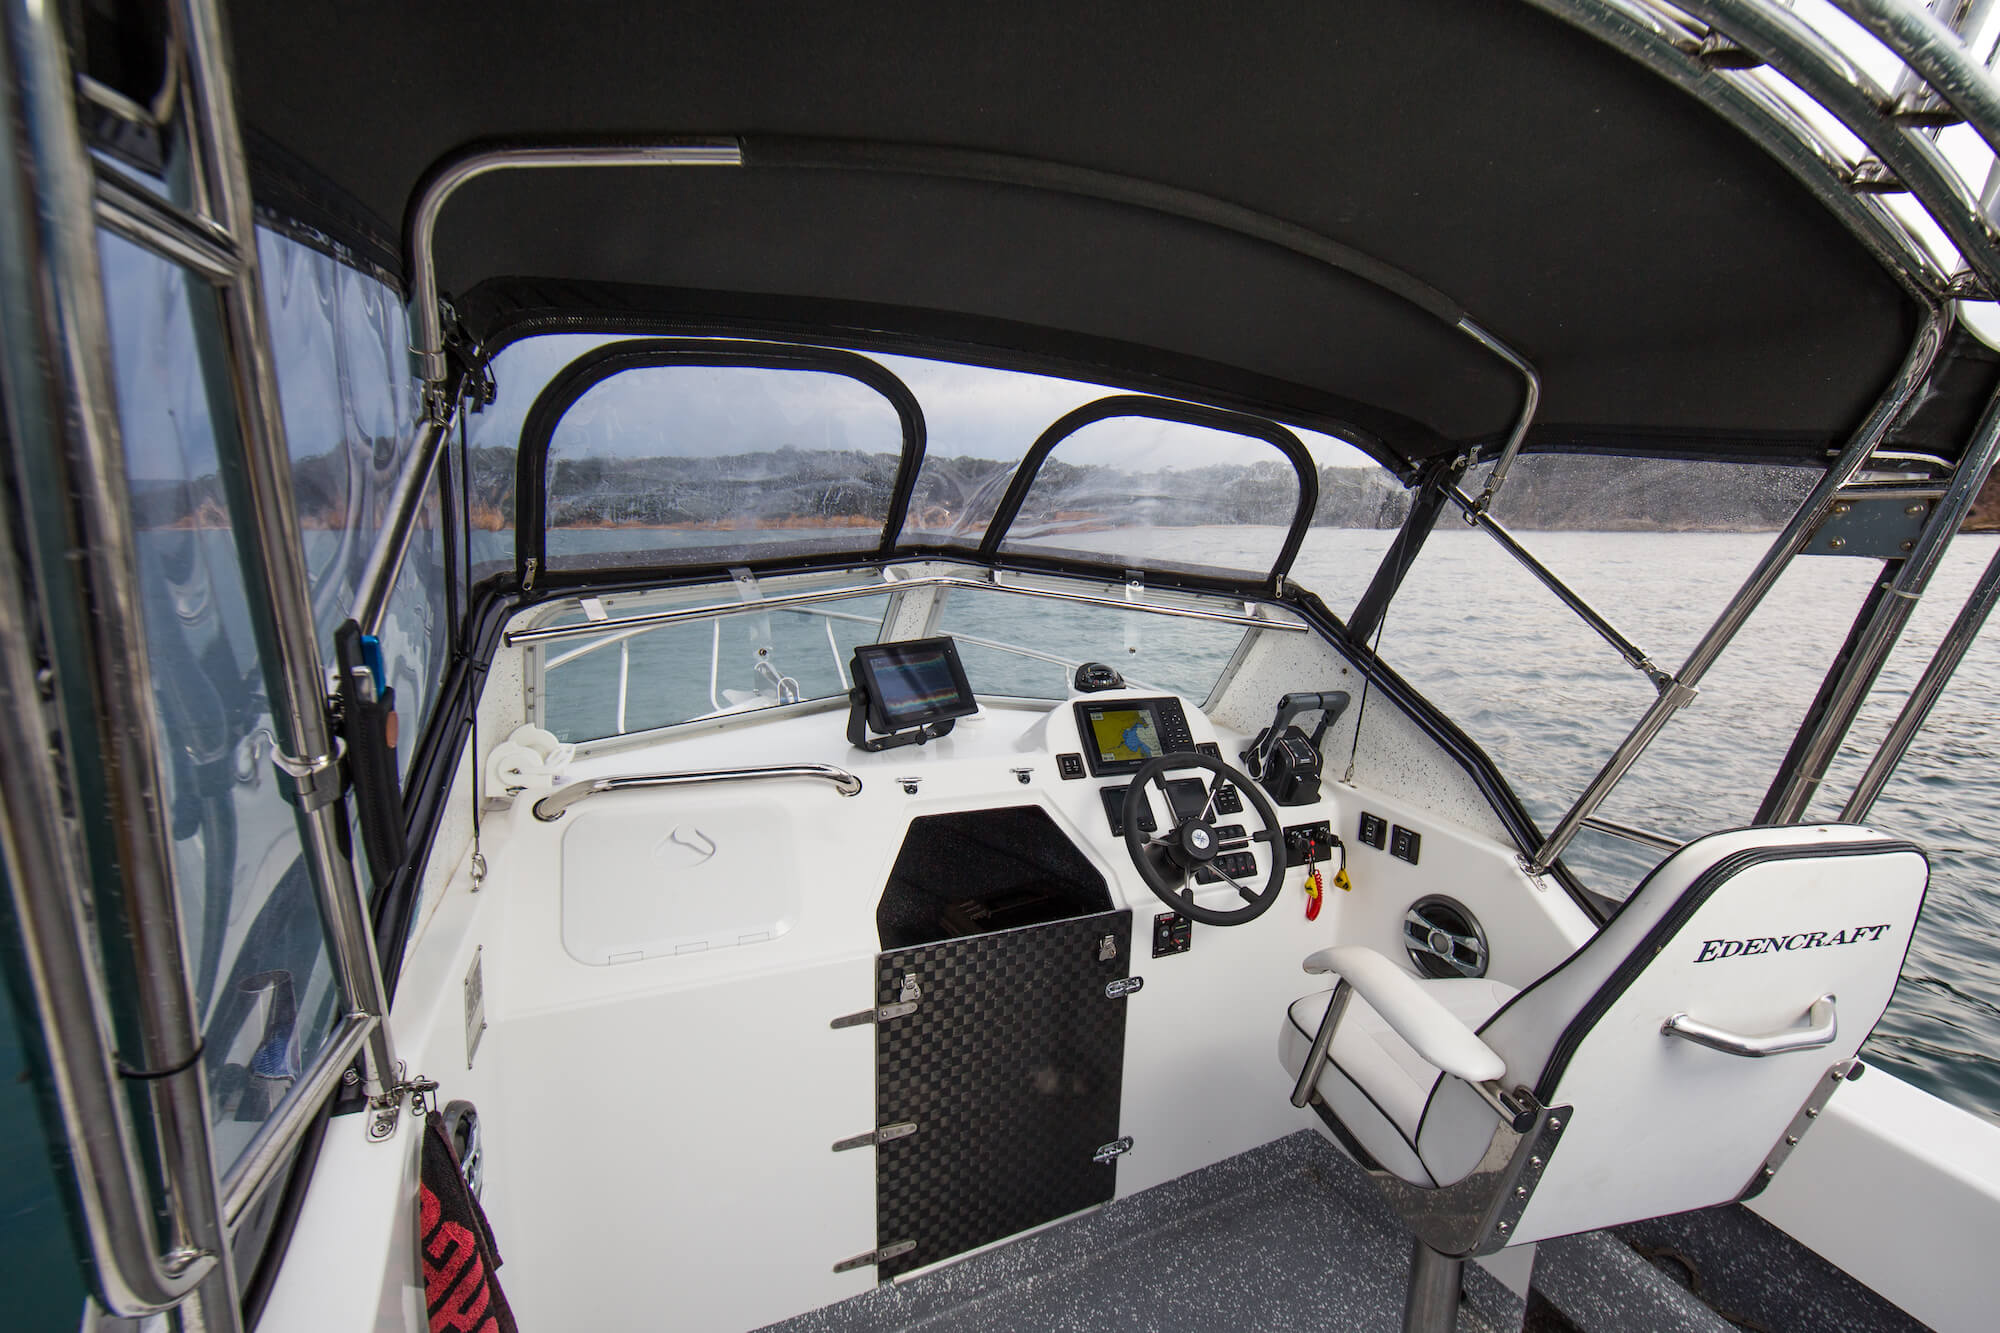 Dash & cabin of the Edencraft 6.0m Offshore boat